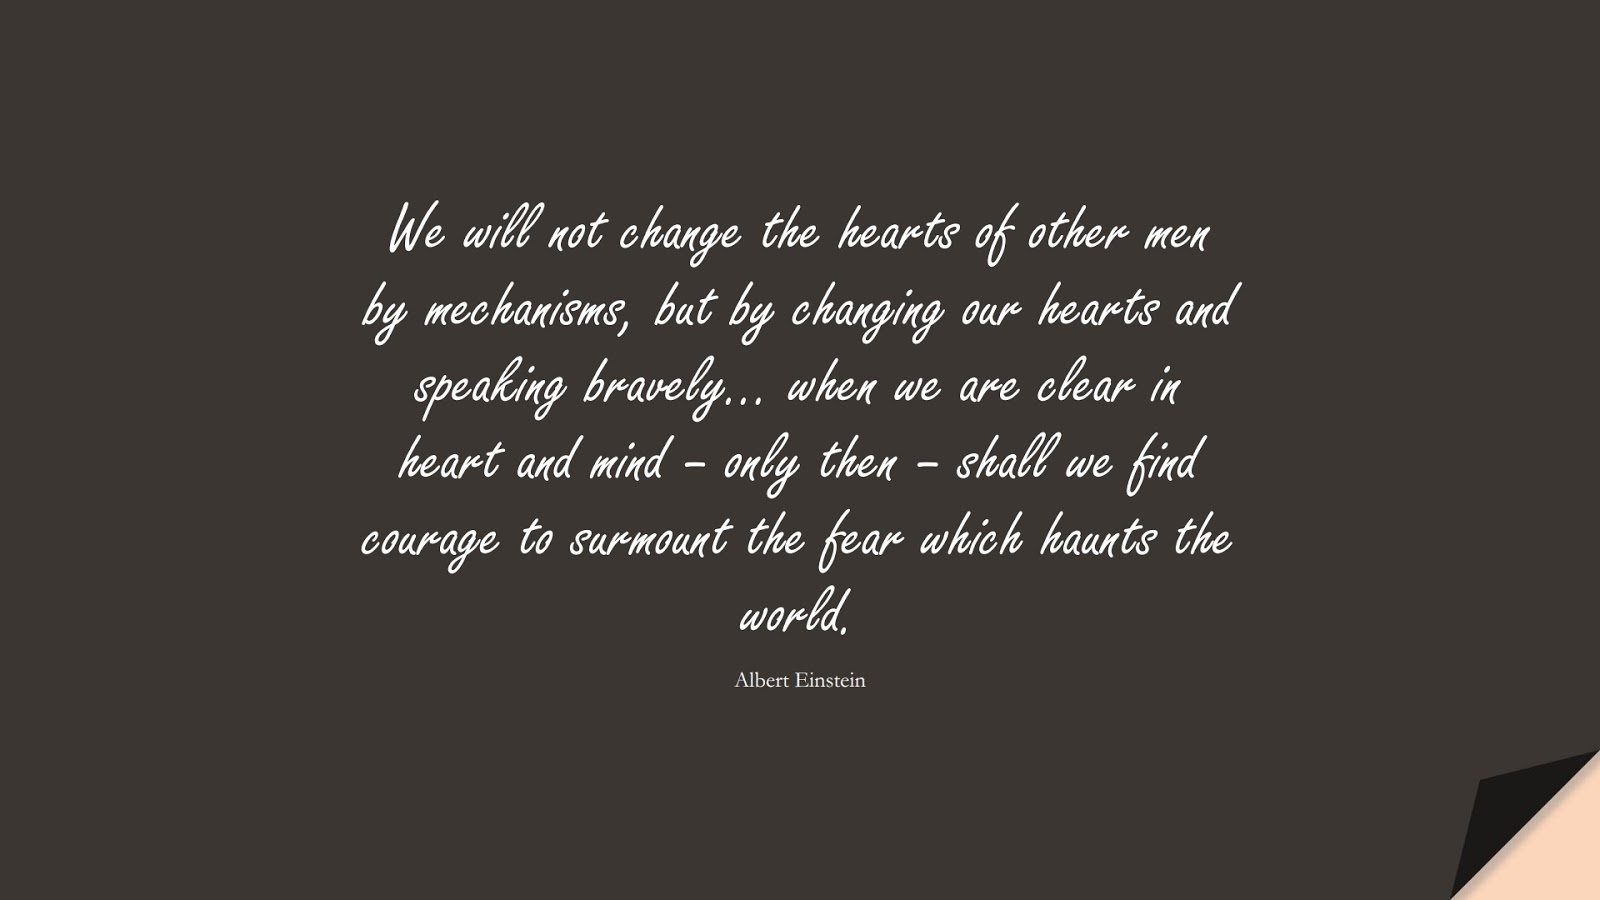 We will not change the hearts of other men by mechanisms, but by changing our hearts and speaking bravely… when we are clear in heart and mind – only then – shall we find courage to surmount the fear which haunts the world. (Albert Einstein);  #AlbertEnsteinQuotes